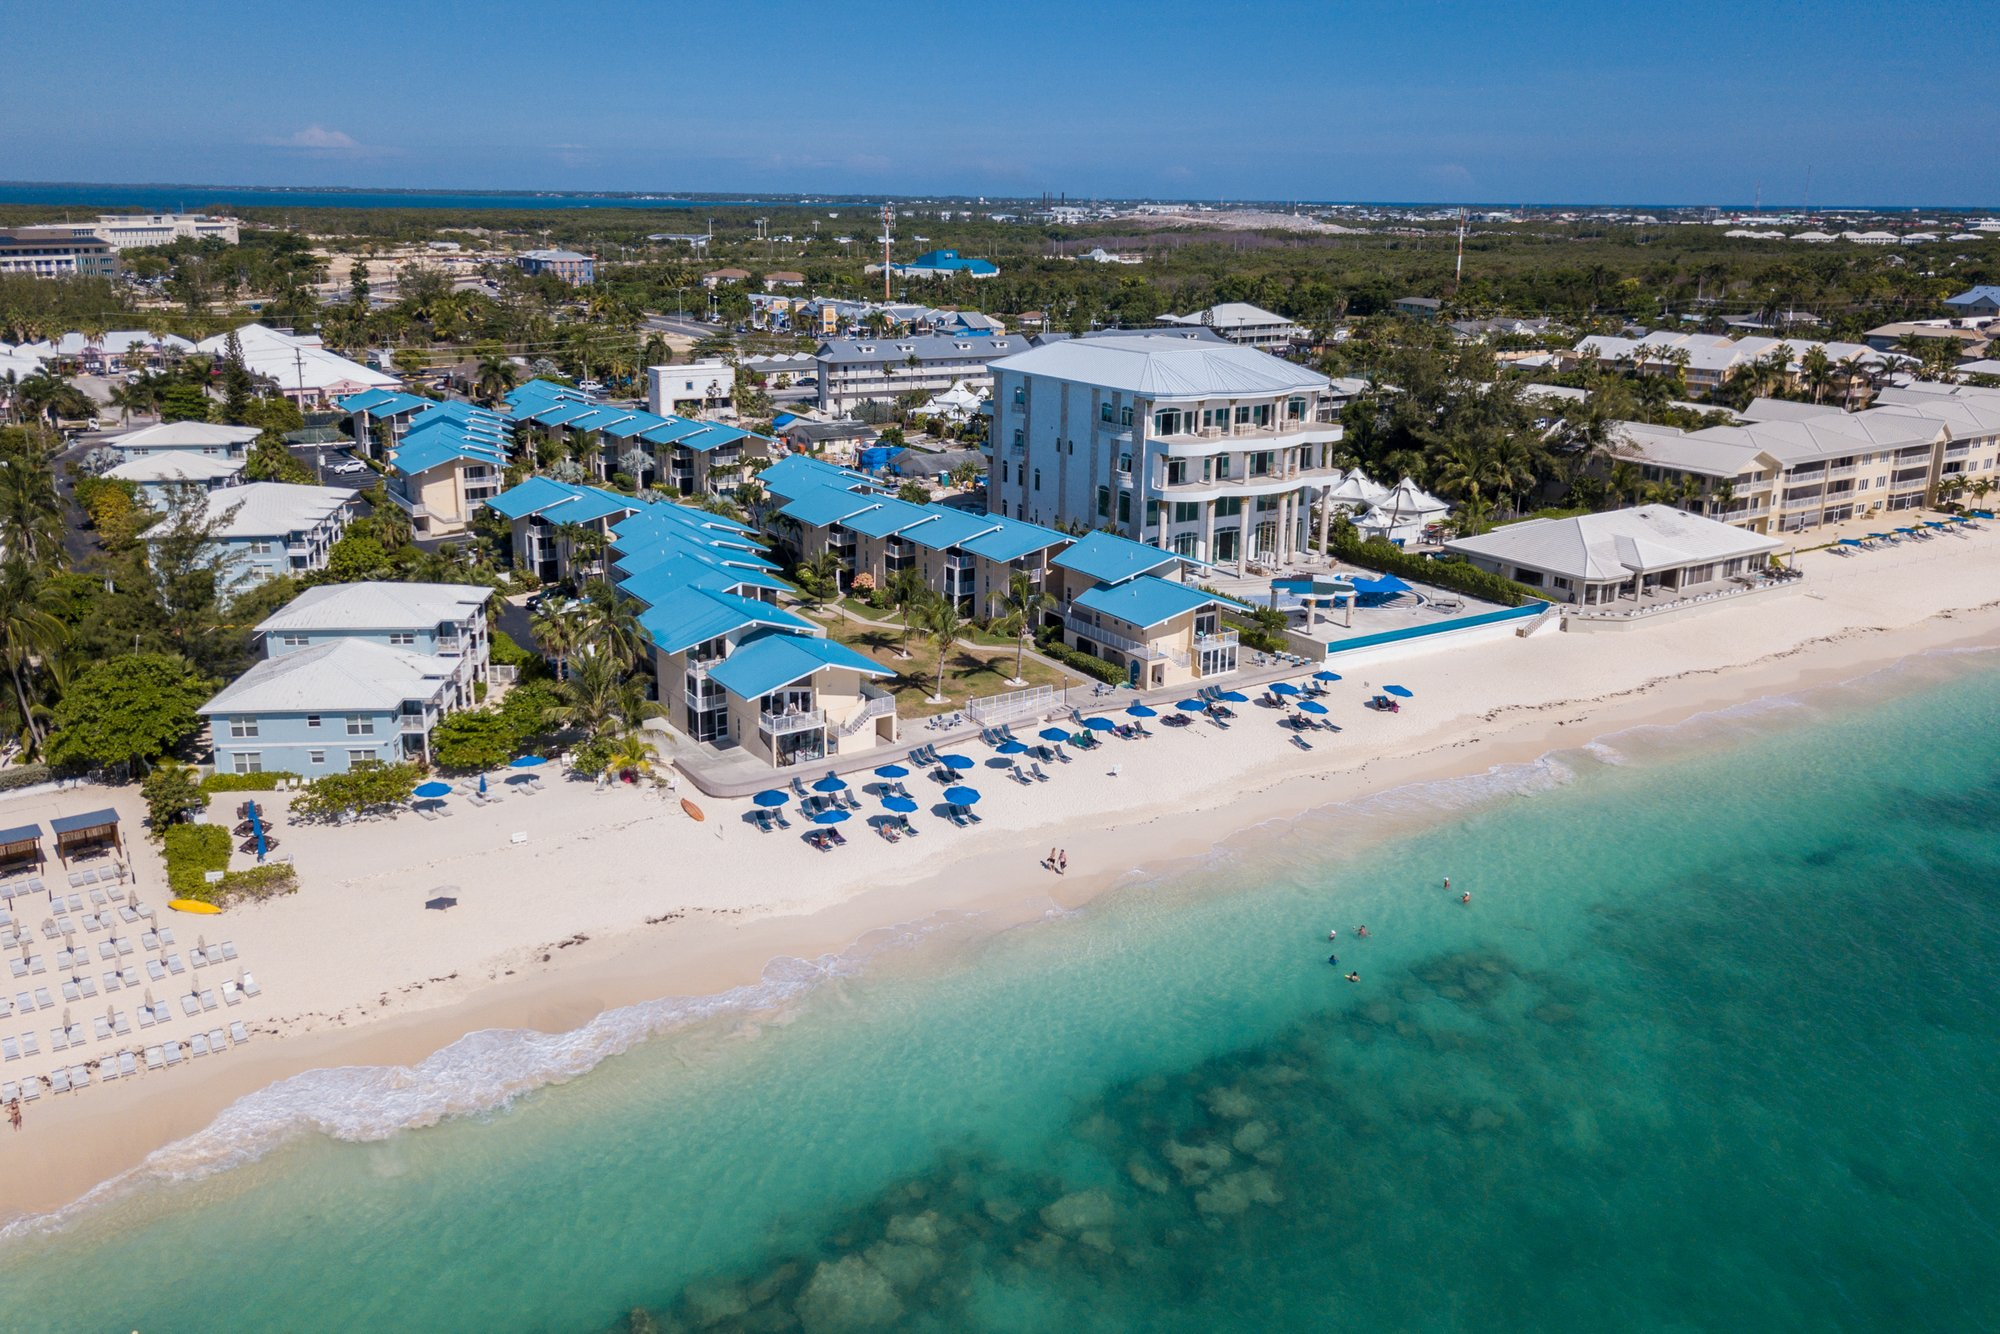 Condo in George Town, George Town, Cayman Islands 1 - 11552530